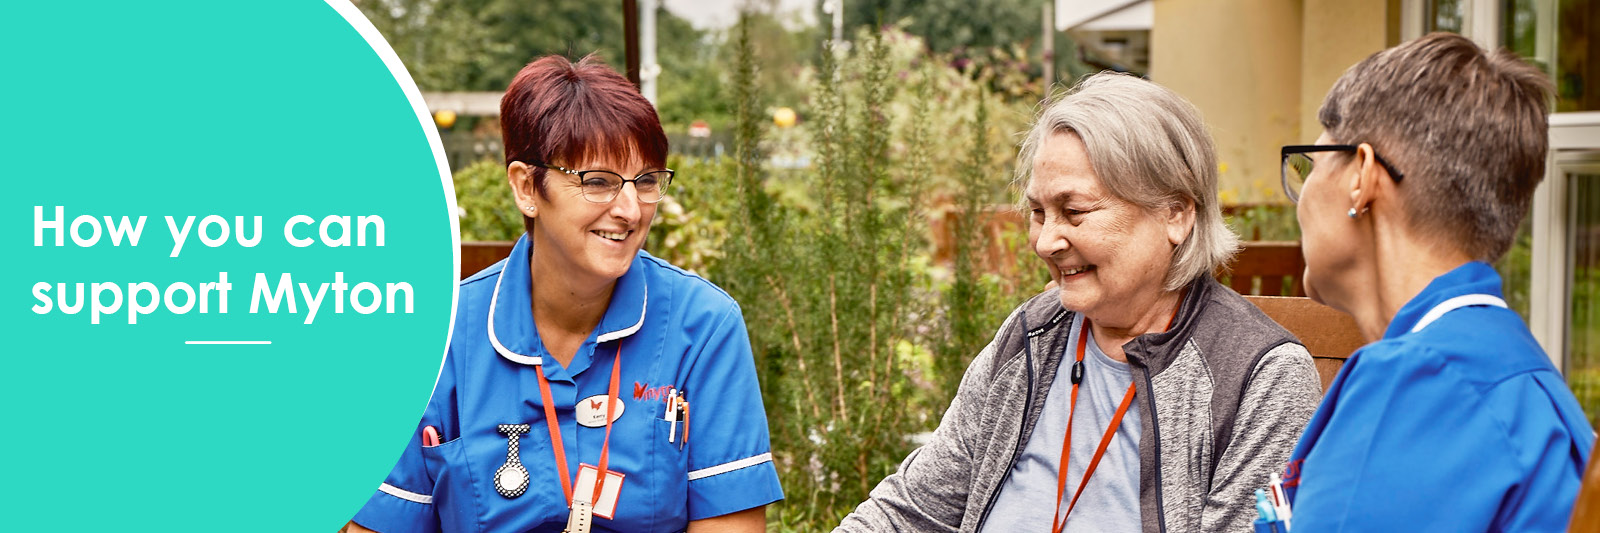 The Myton Hospices - Myton Hospice - Warwickshire - Warwick - Coventry - Leamington Spa - Rugby - Hospice